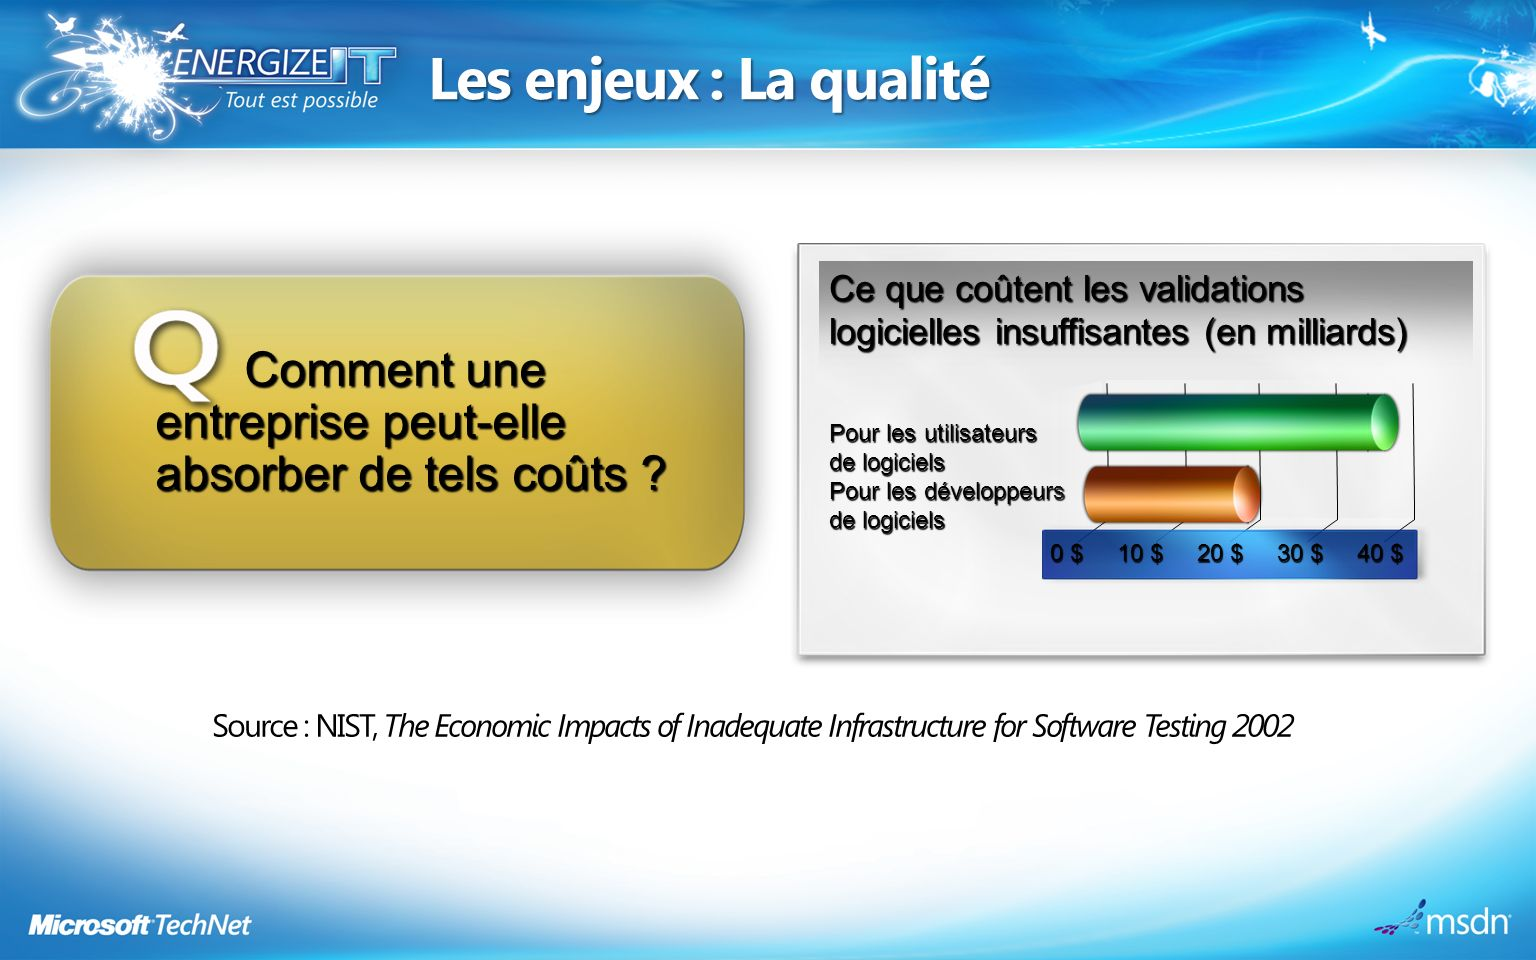 Les enjeux : La qualité Source : NIST, The Economic Impacts of Inadequate Infrastructure for Software Testing 2002 Ce que coûtent les validations logi